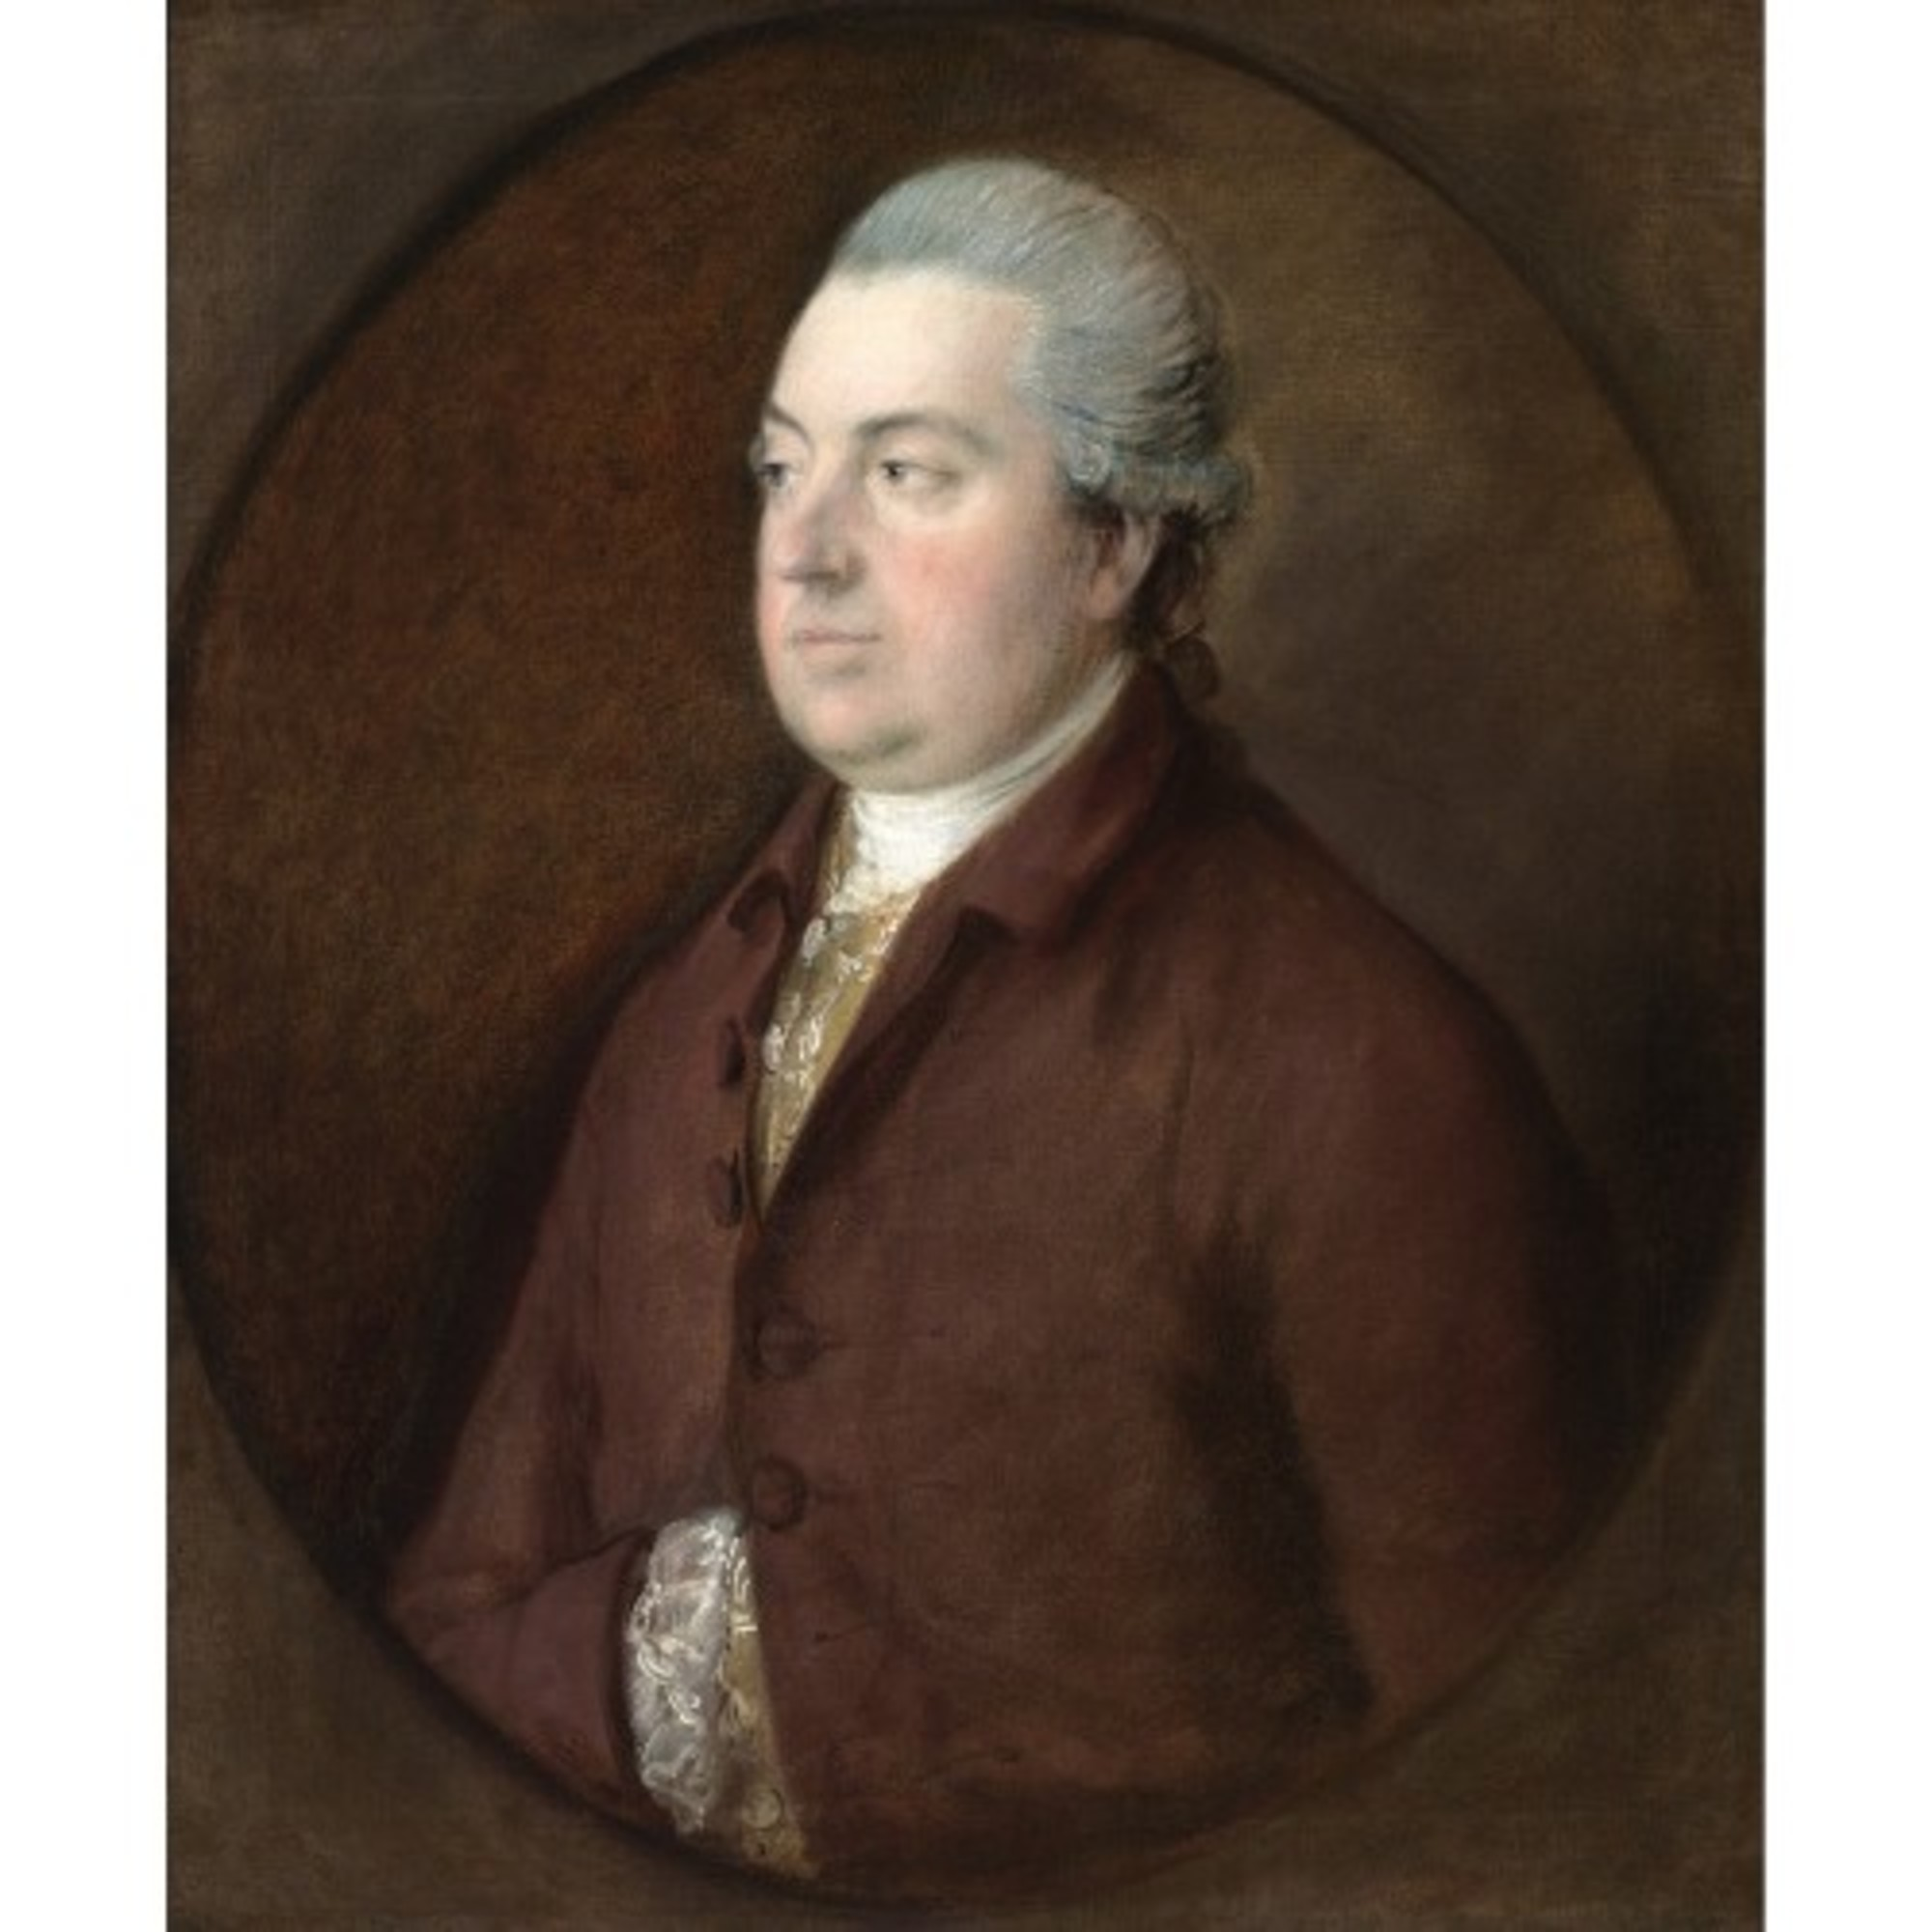 Portrait_of_Francis_Bennett_by_Thomas_Gainsborough.jpg